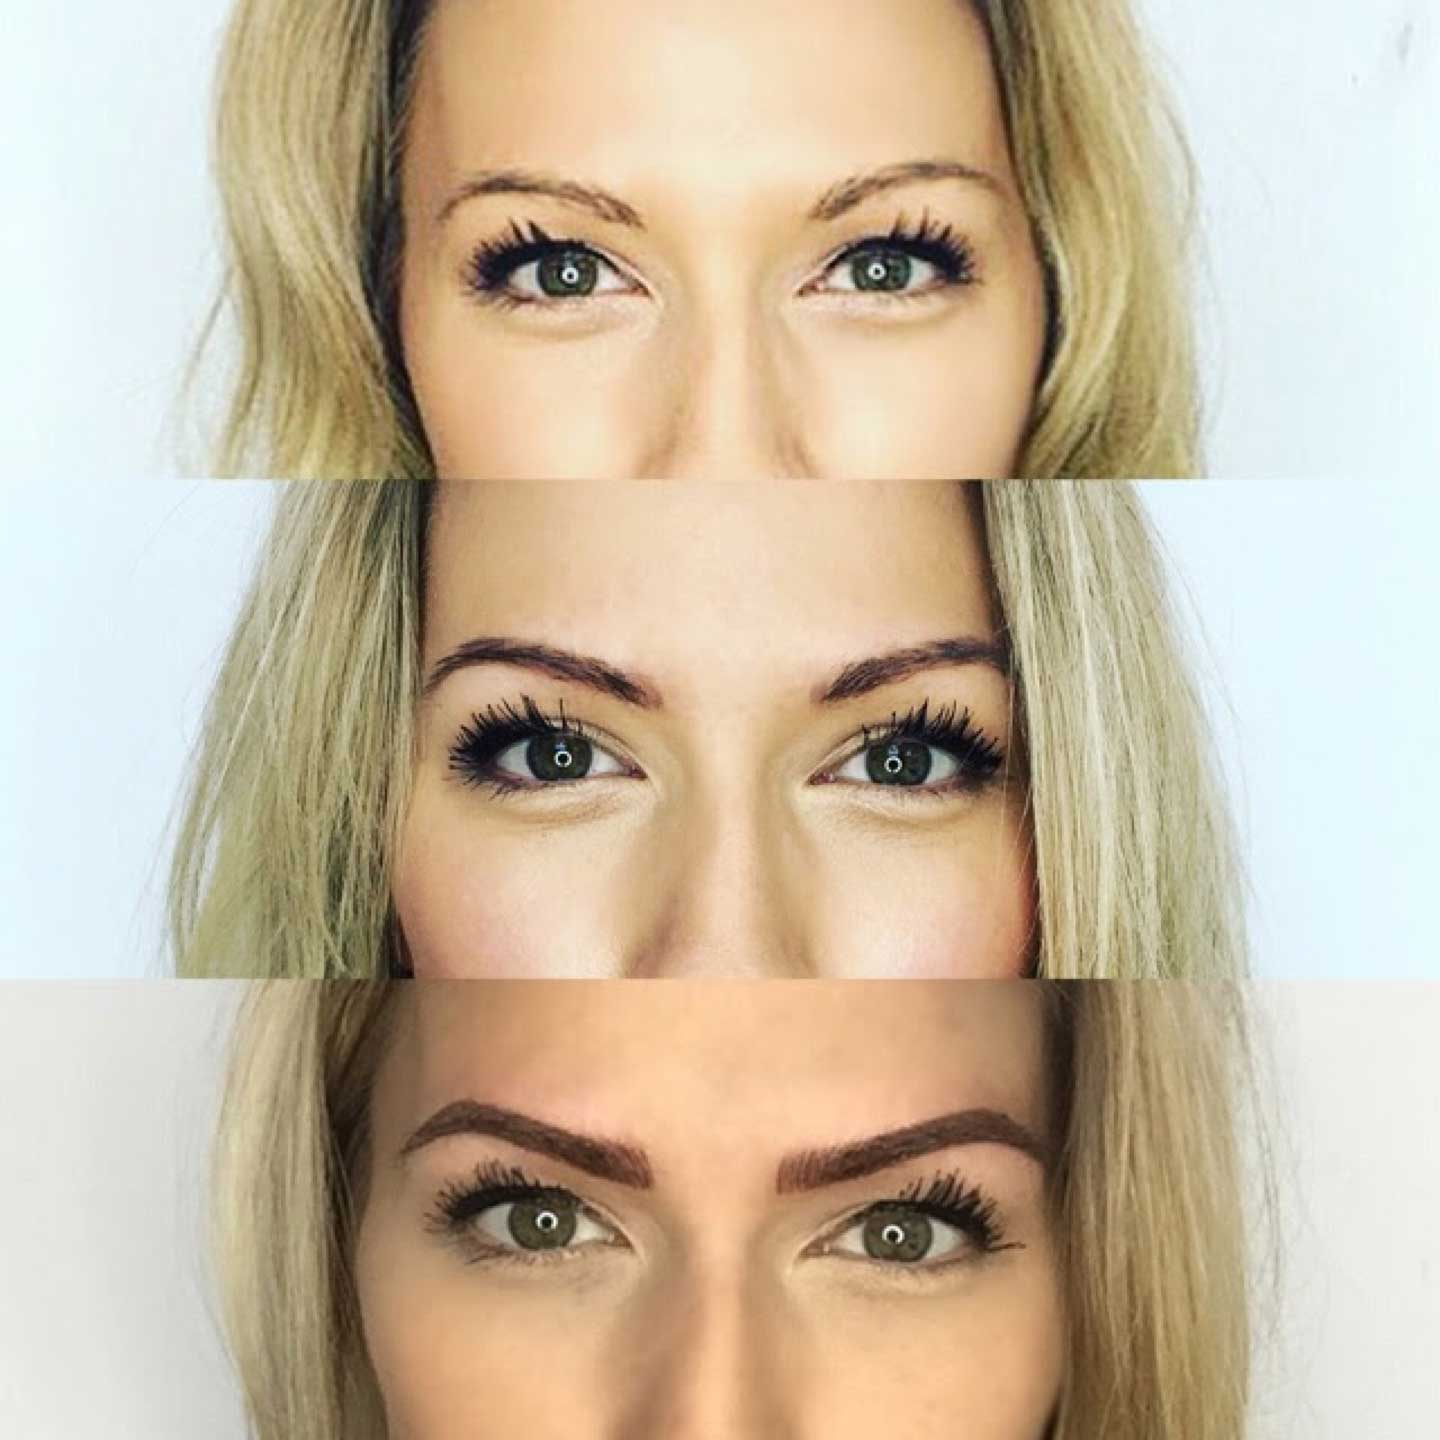 Permanent make-up artist and certified brow specialist in Toronto.